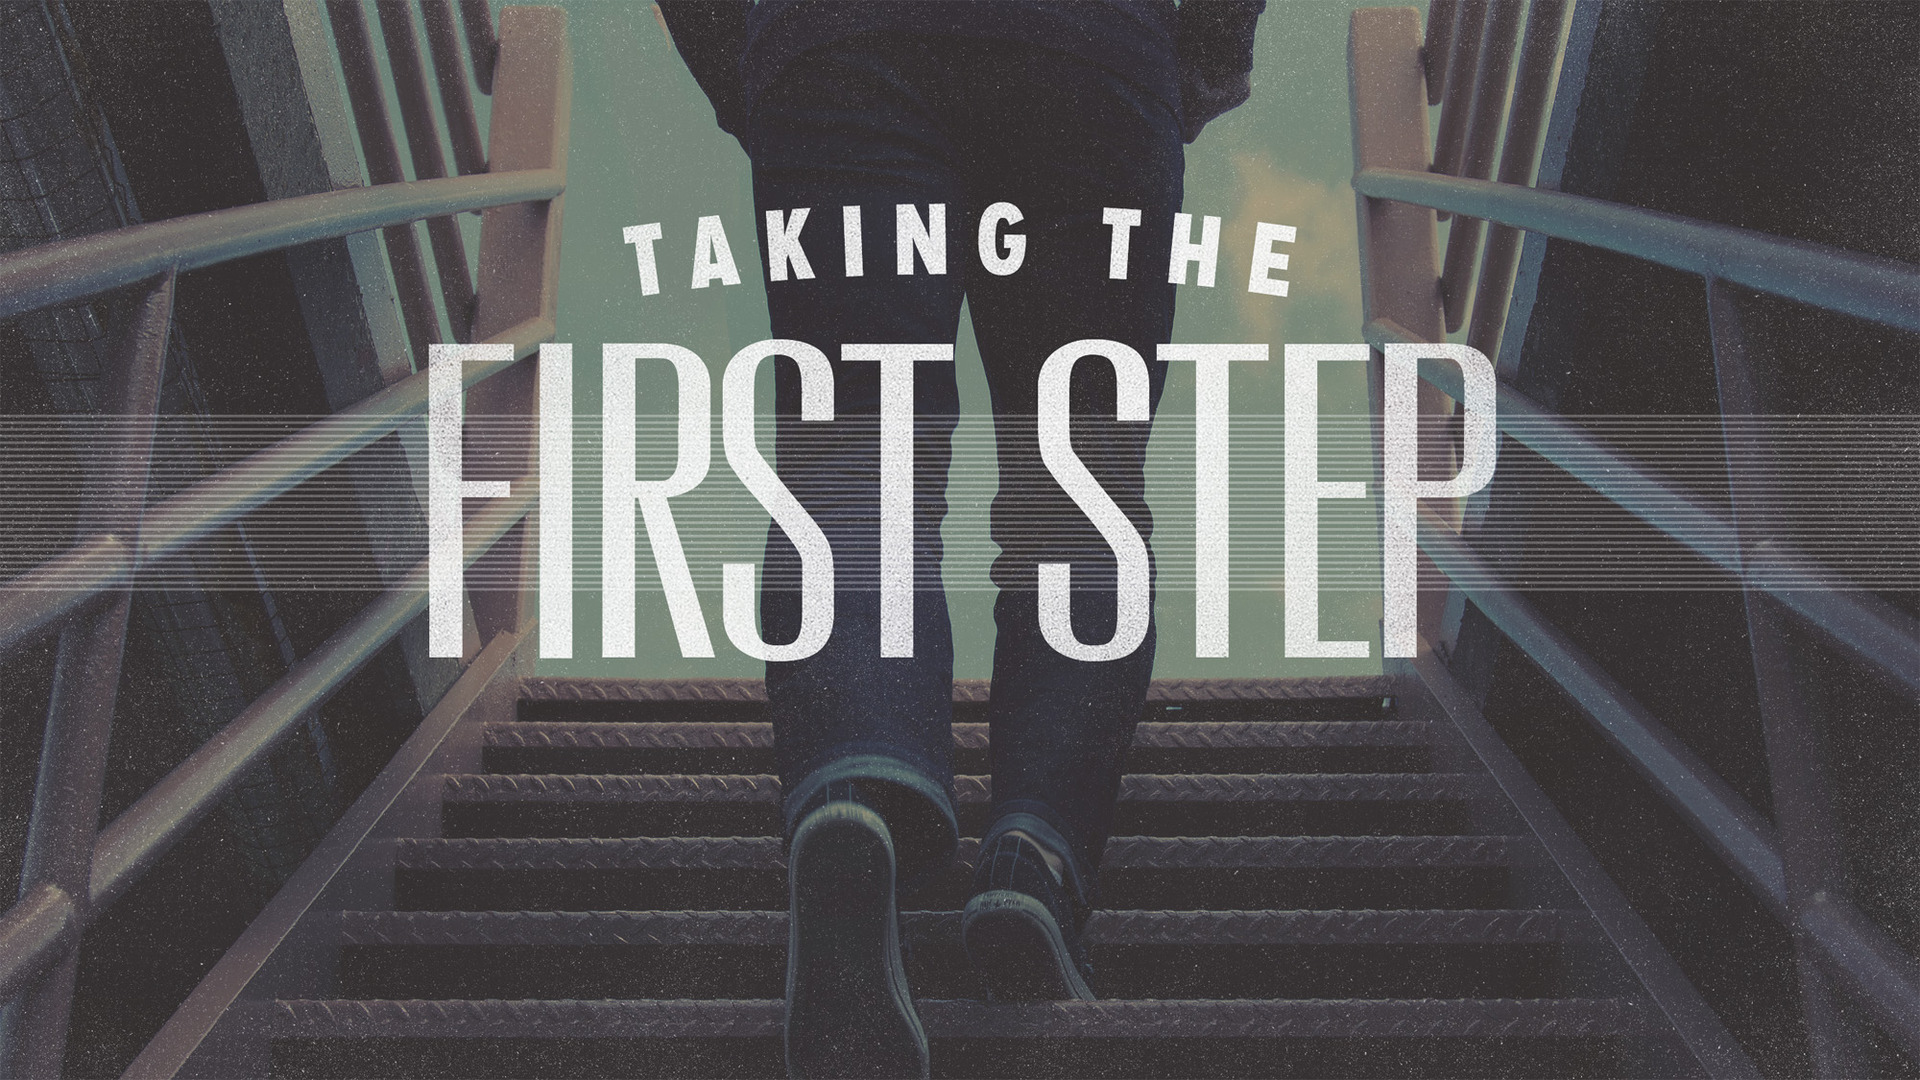 Step 1: First Step - First Step is the first of the Next Steps classes. It provides an introduction to Journey - who we are and what we're all about. Whether you're new to the faith or just new to Journey, this is where you want to begin.First Step is held the first Sunday of every month in the Family Room at 12:30. It is also available online. Click the button below to get started.